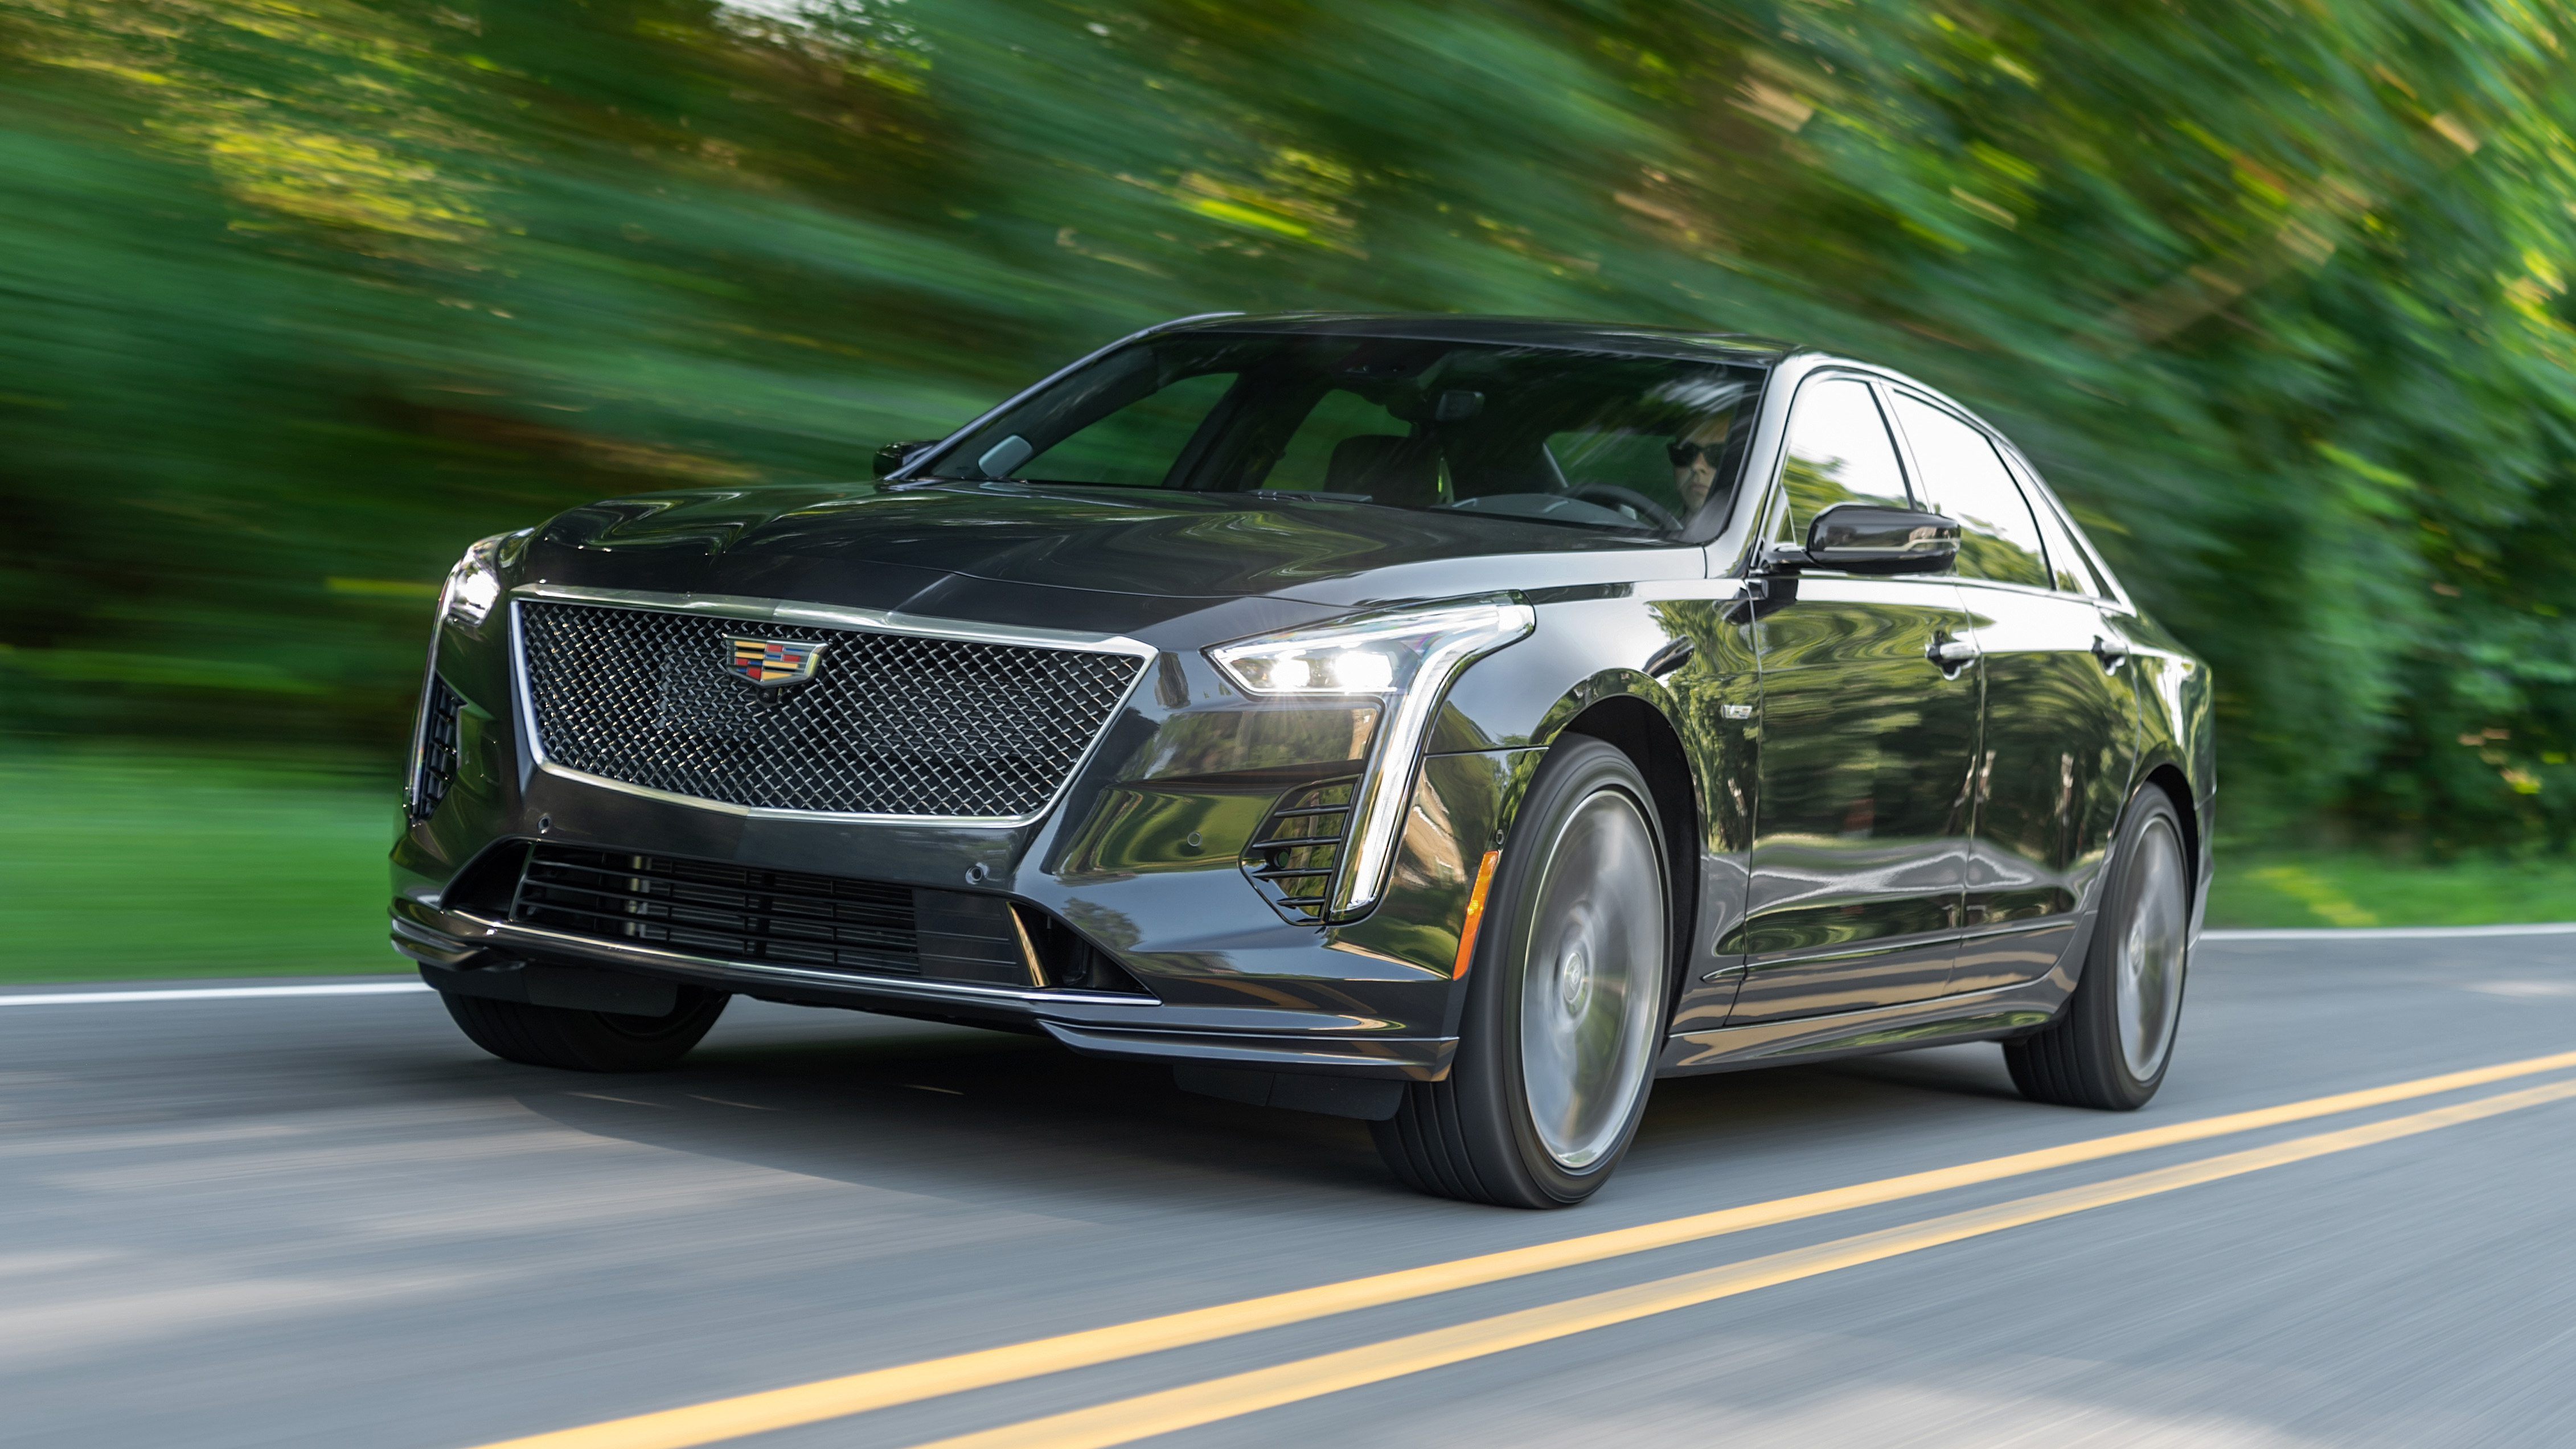 2020 Cadillac CT6-V First Drive Review | What's new, specs ...